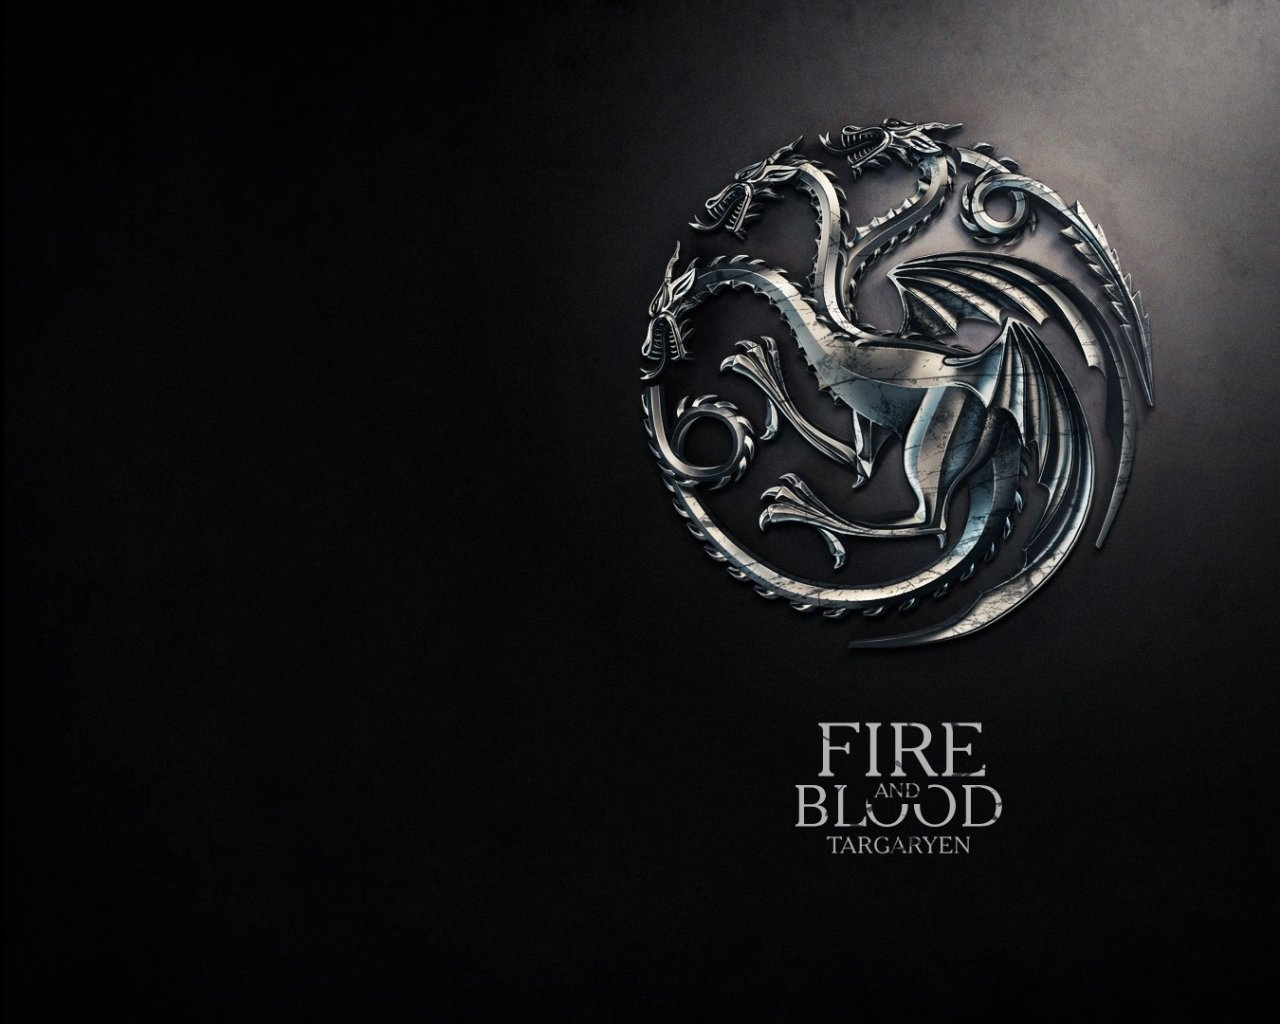 1280x1024 dragons fantasy art game of thrones a song of ice and fire 1280x1024